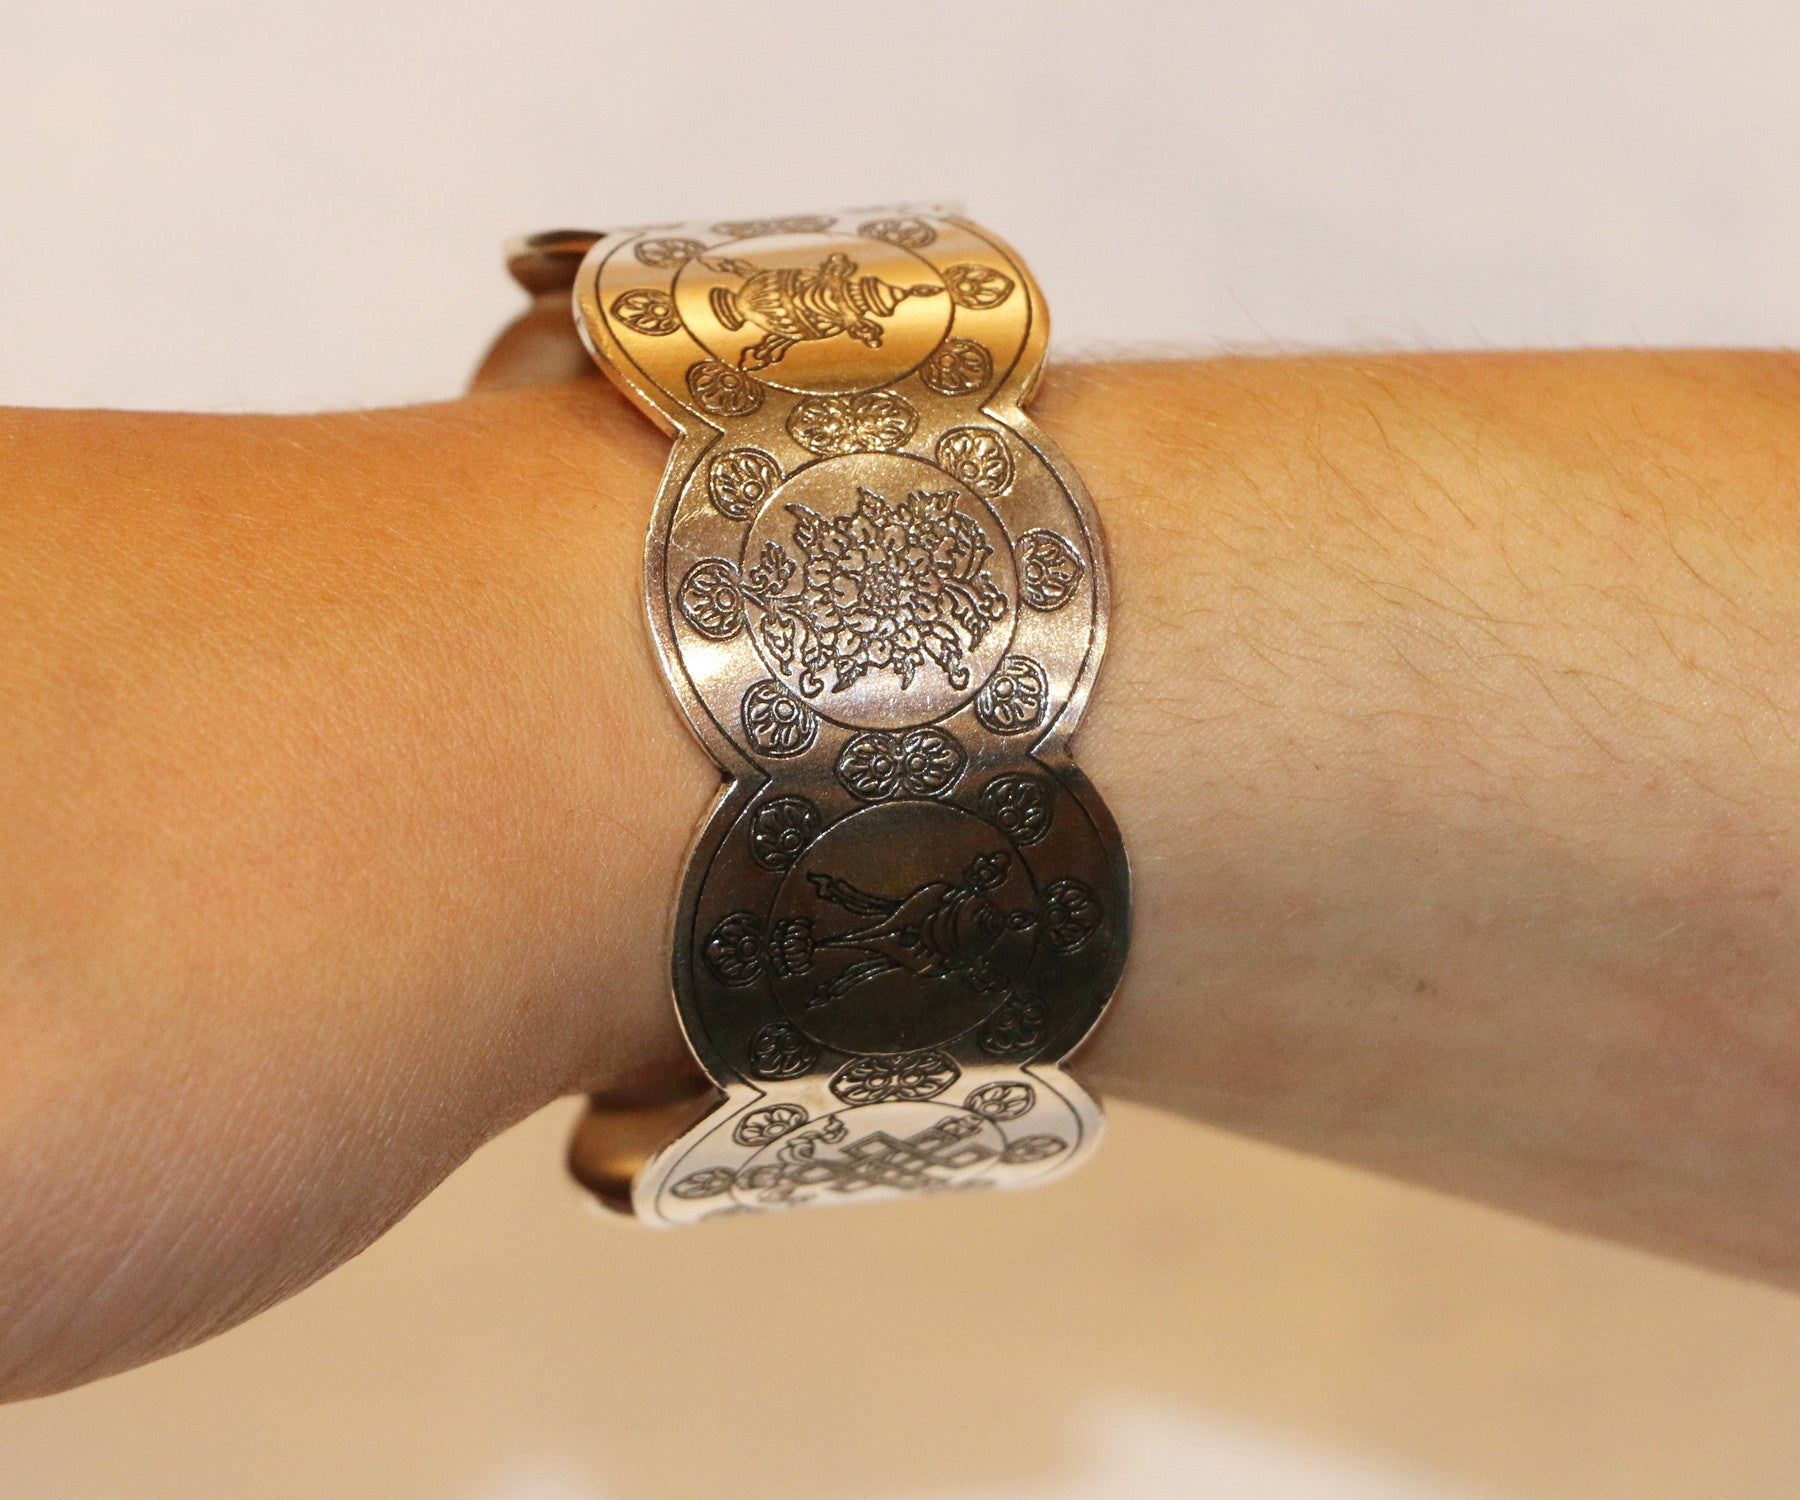 The Eight Auspicious Sign Bracelet - Tibet Arts & Healing